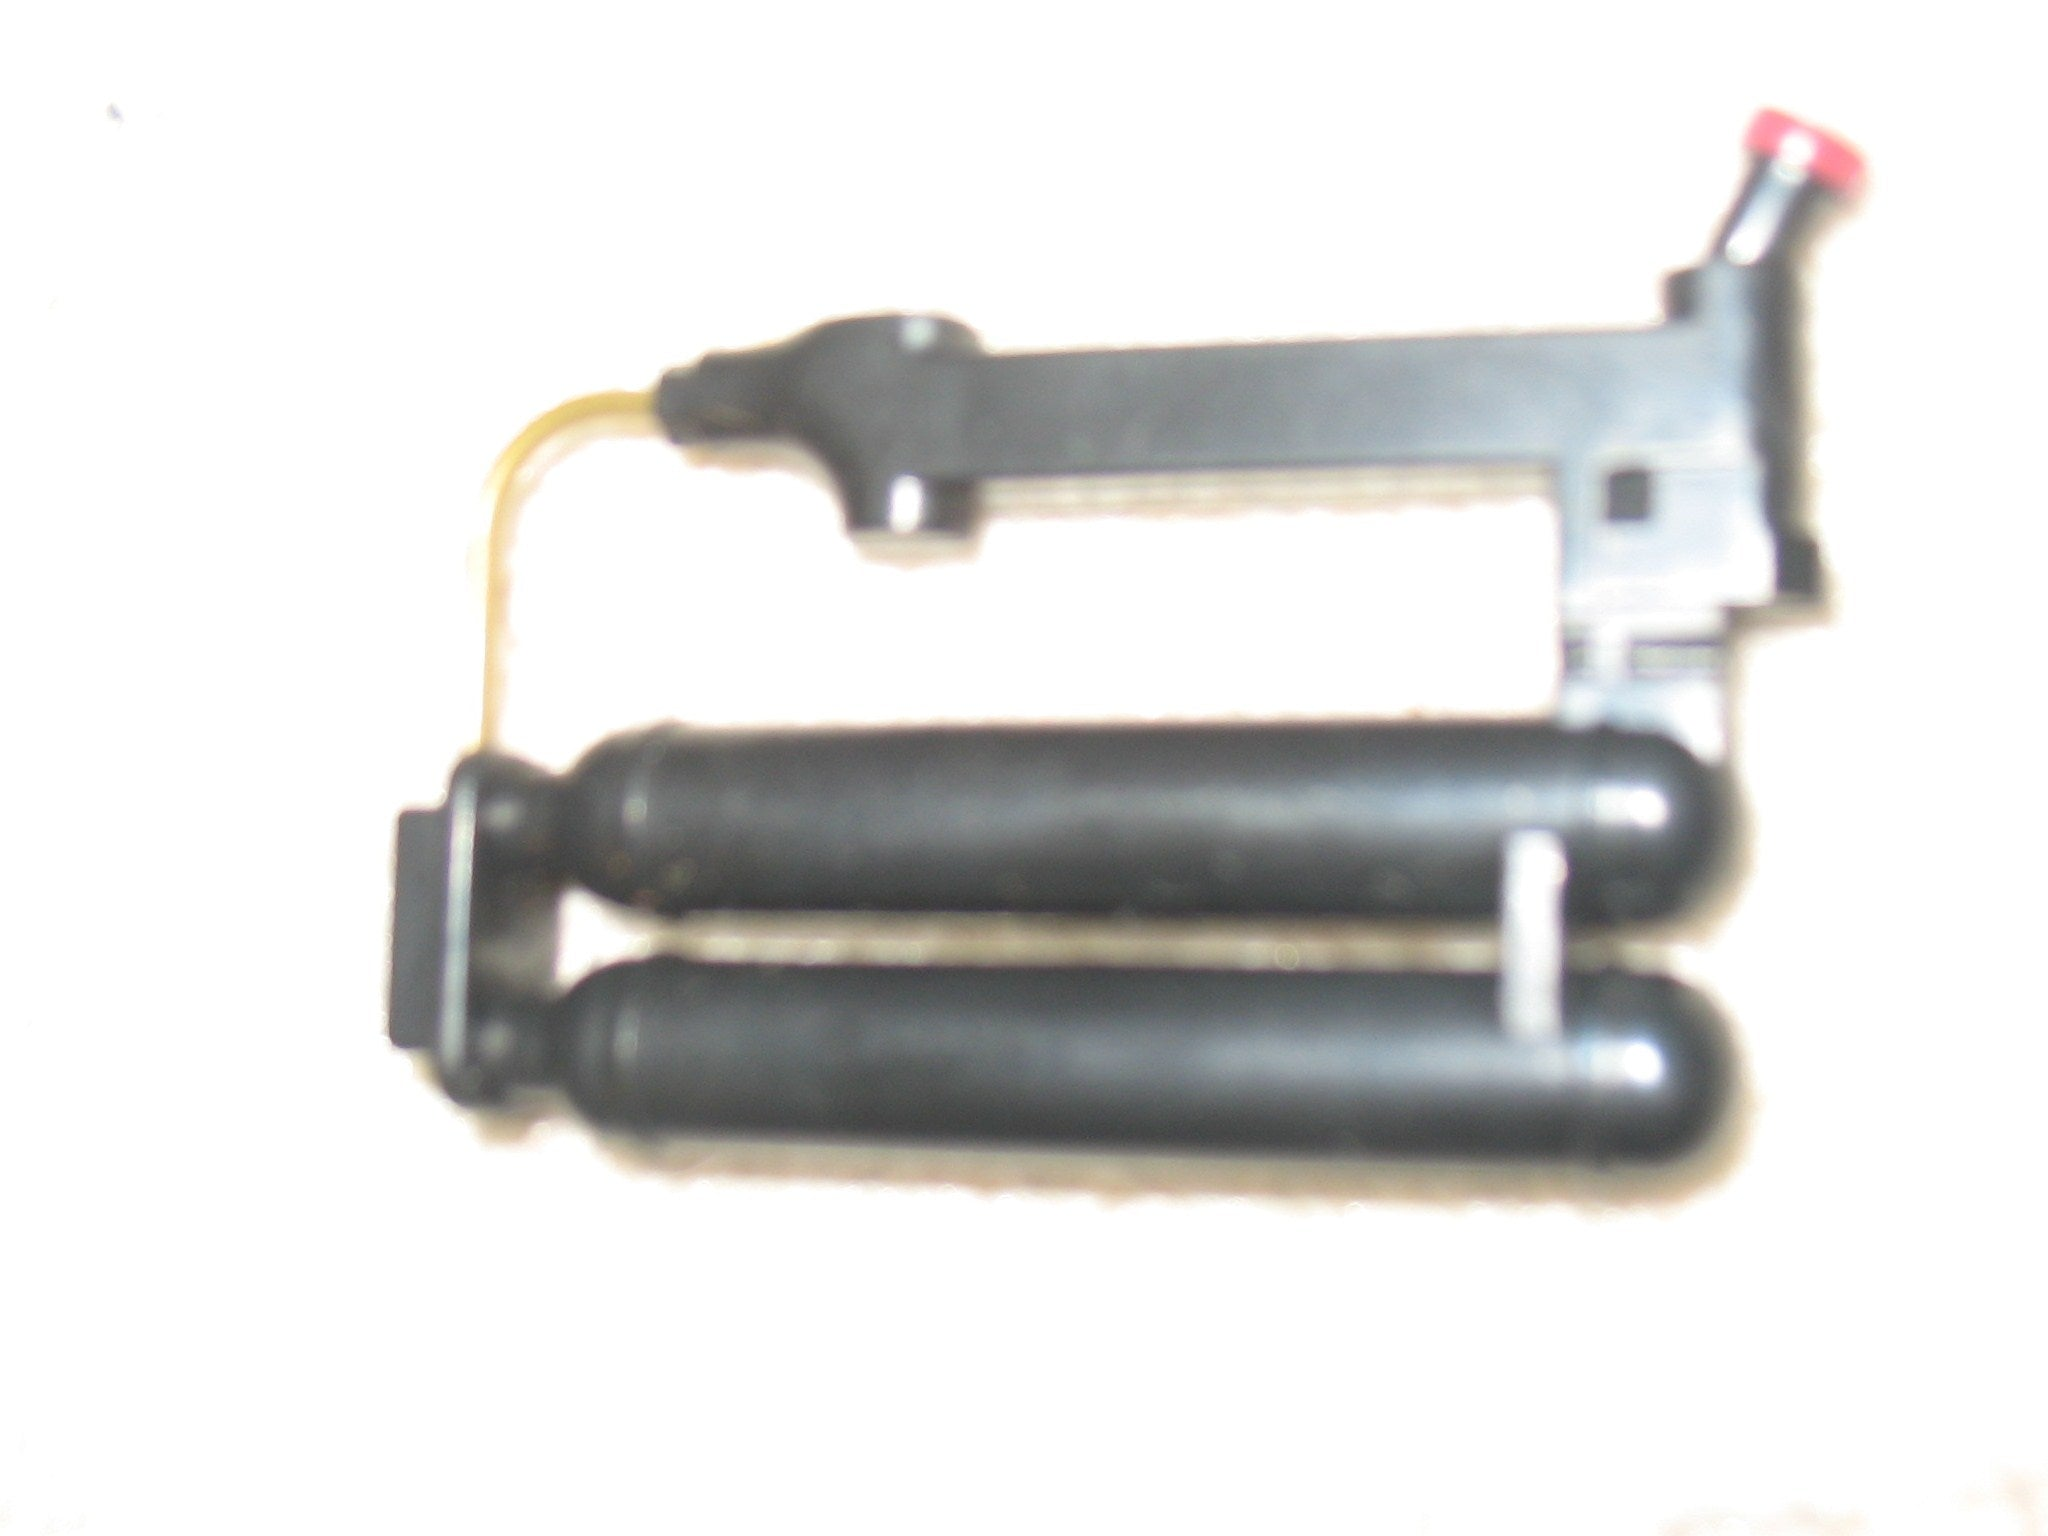 A149 Astronaut Air Tank propellant Gun choose painted or unpainted